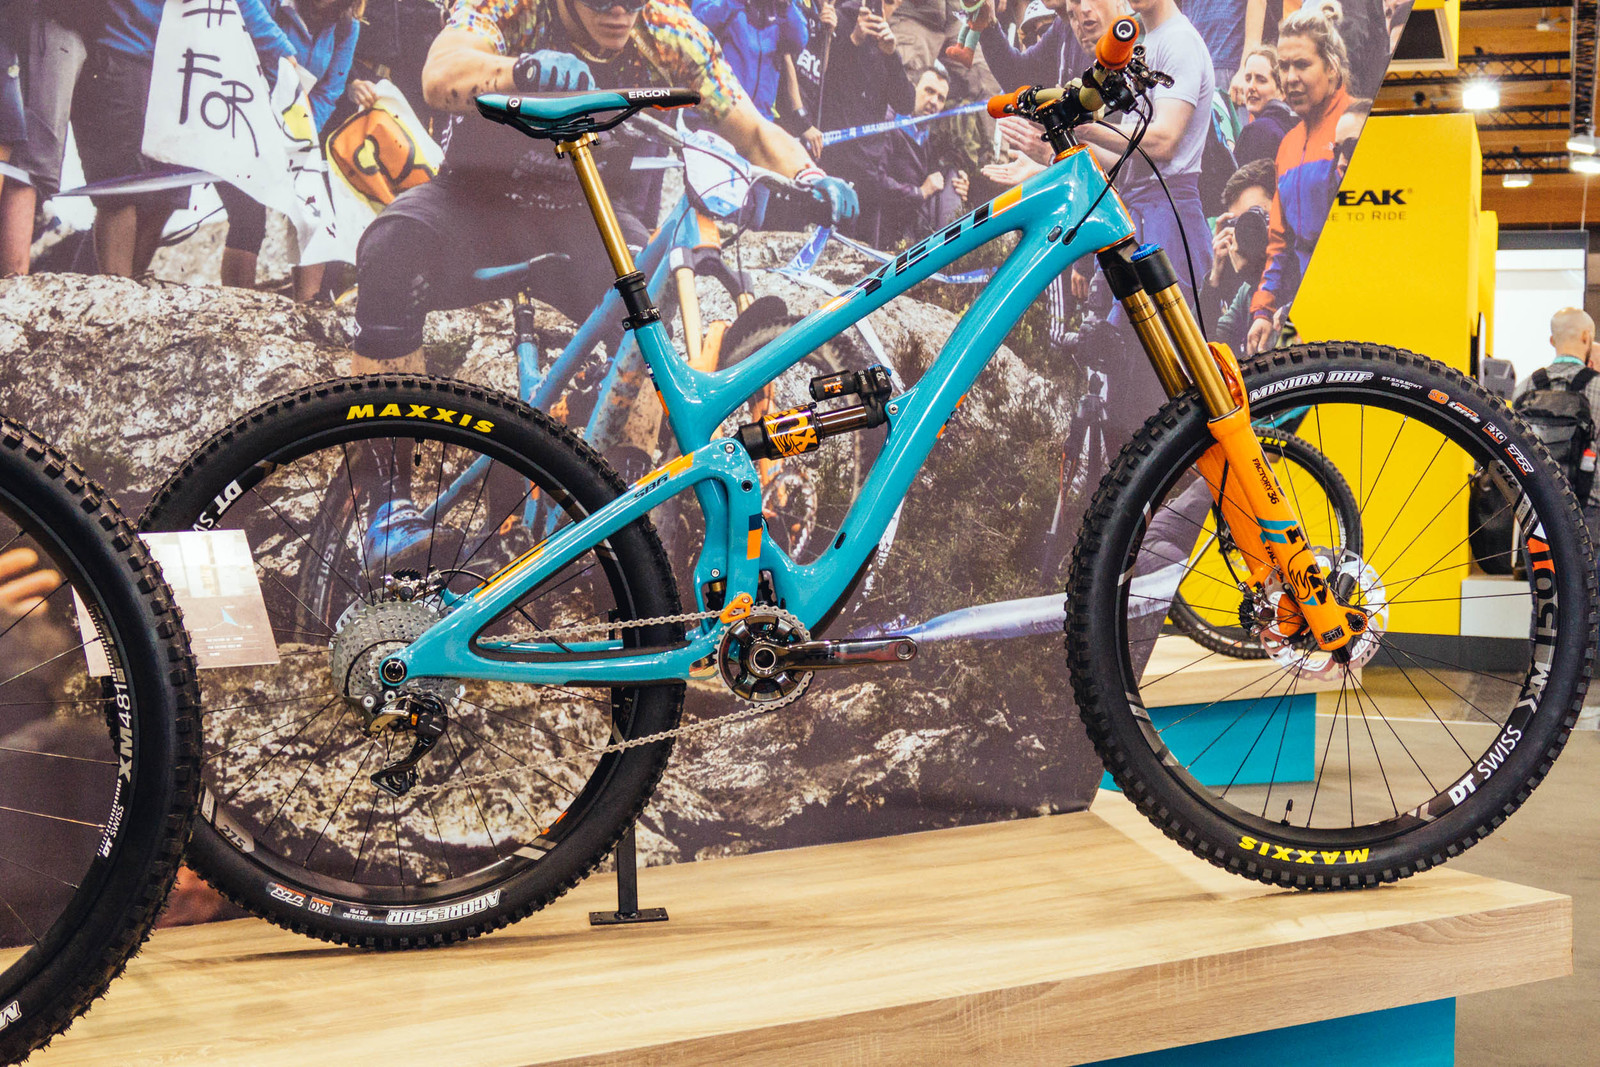 61be7d28a New for 2018 Yeti is producing a limited run of 125 team replica bikes. The  SB6 s are modeled after what Richie Rude and the Yeti enduro squad run on  the ...